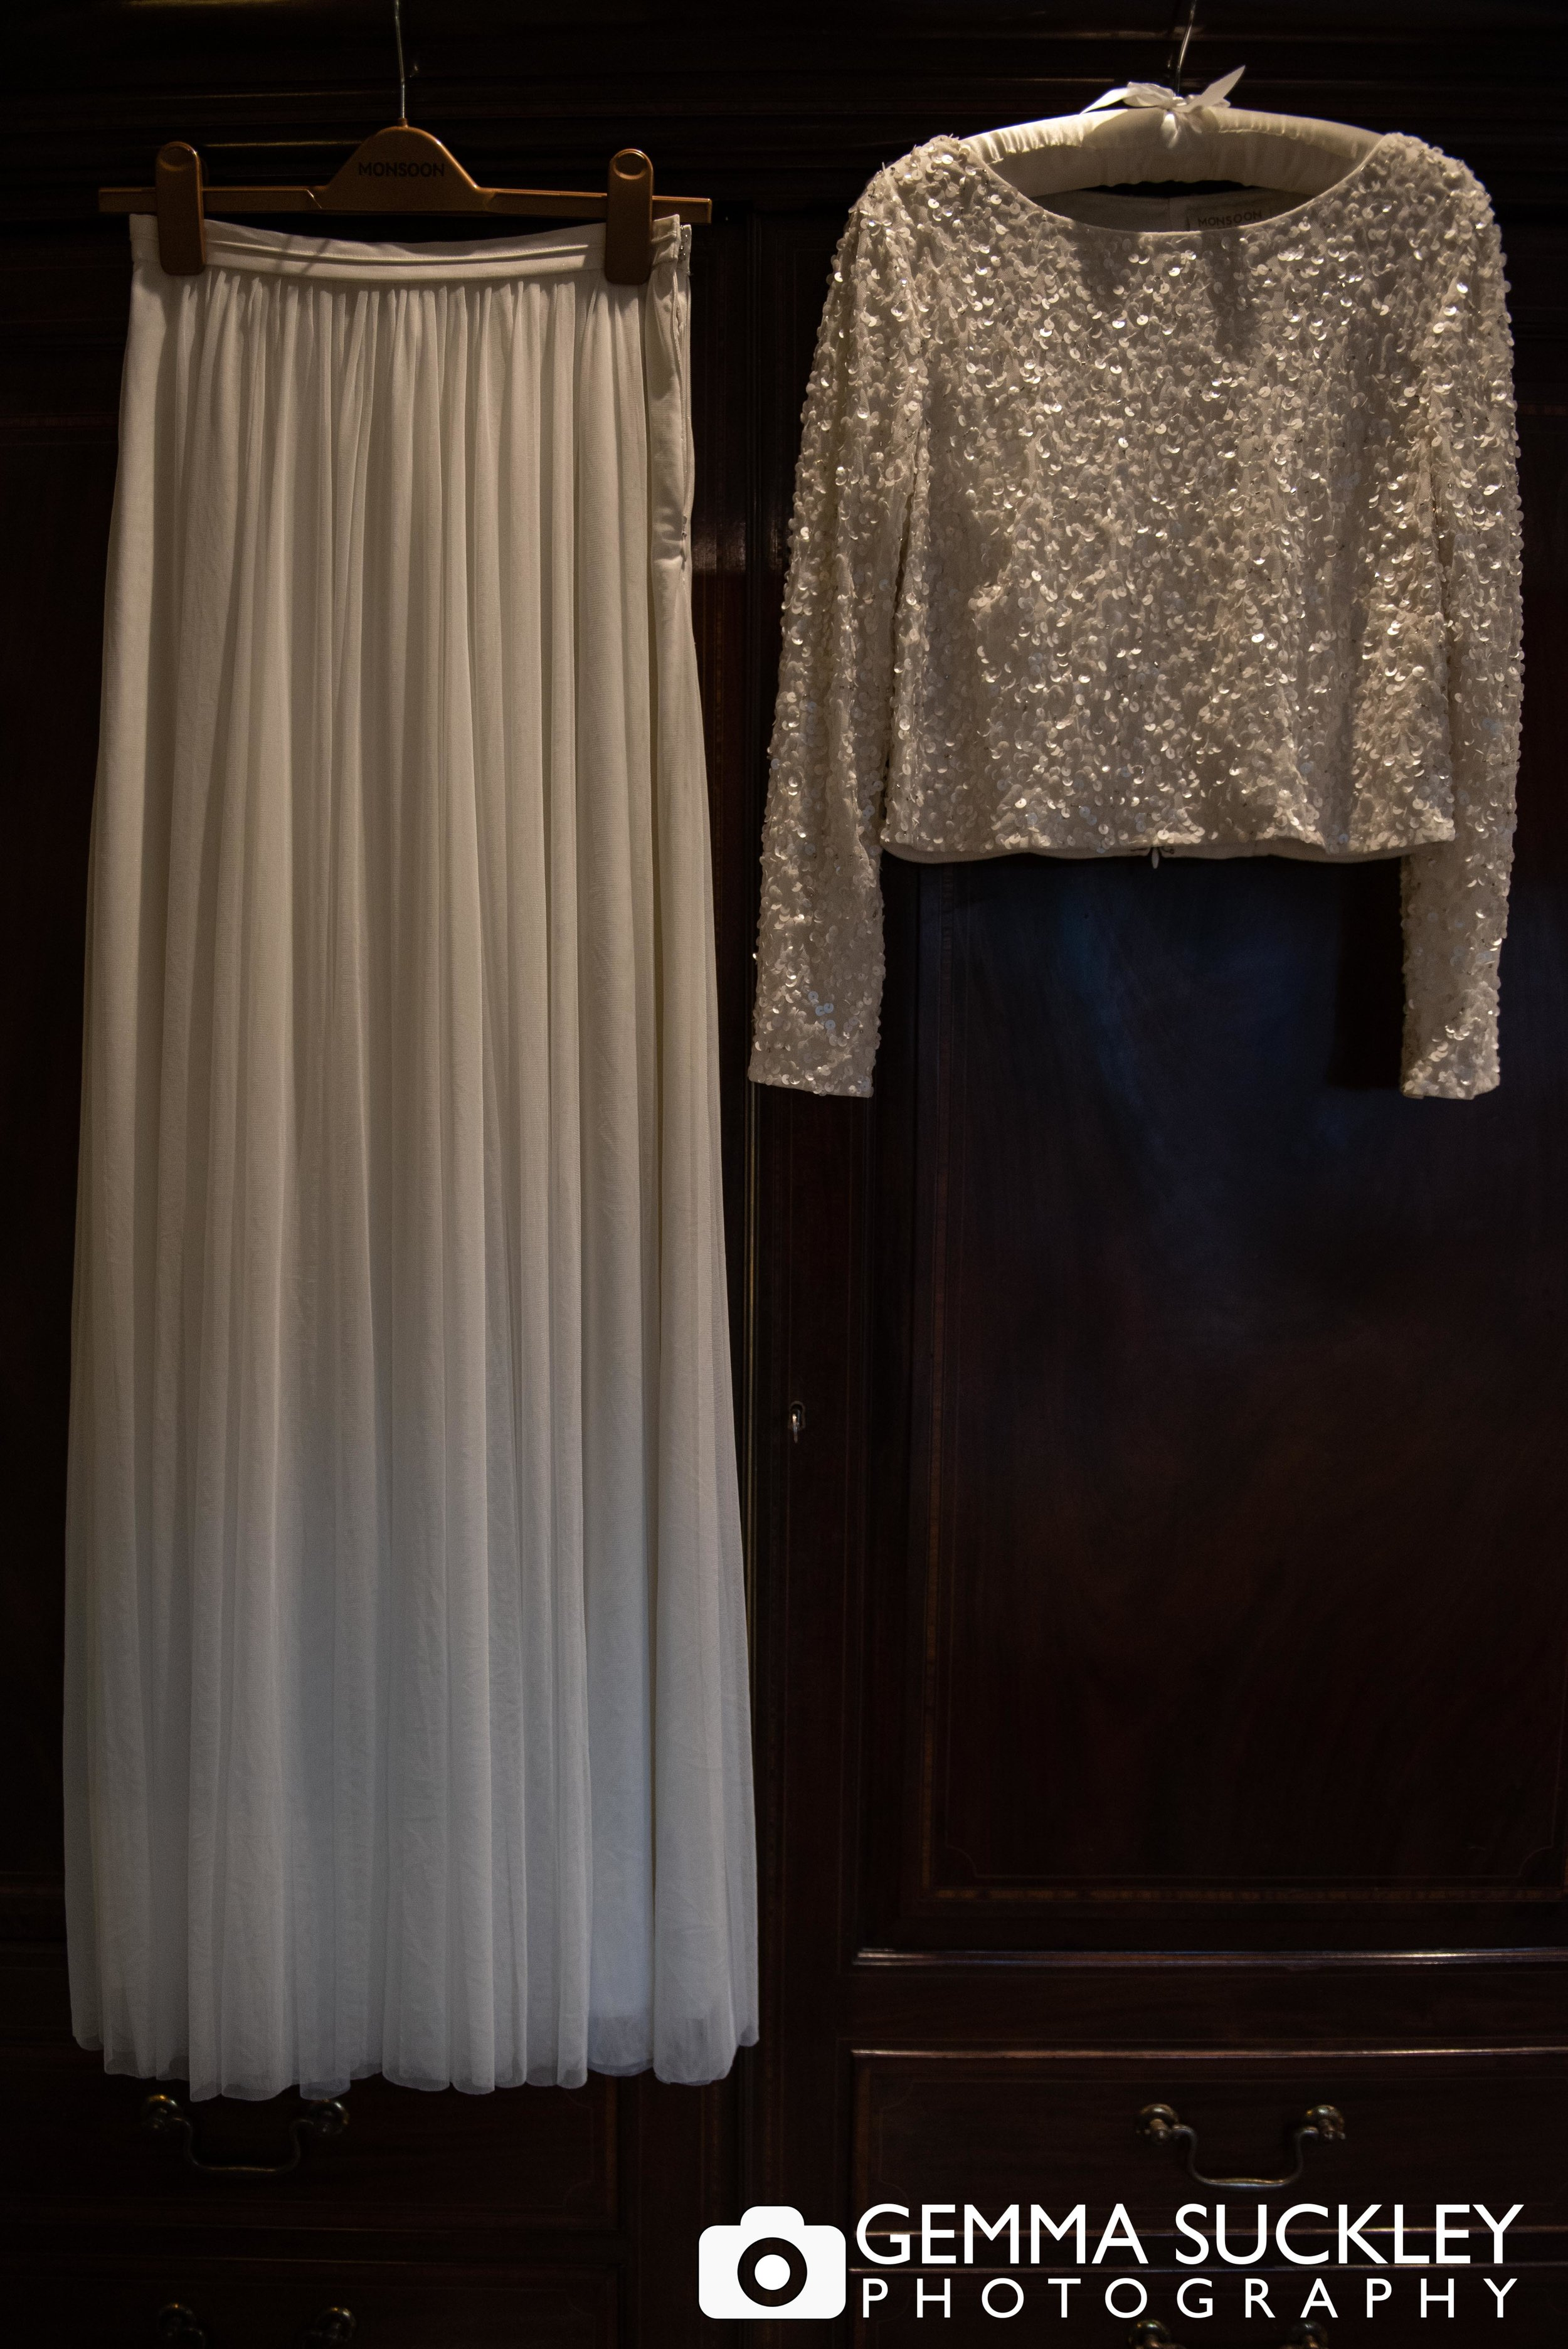 wedding photography of bridal skirt and top at Devonshire arms in bolton abbey